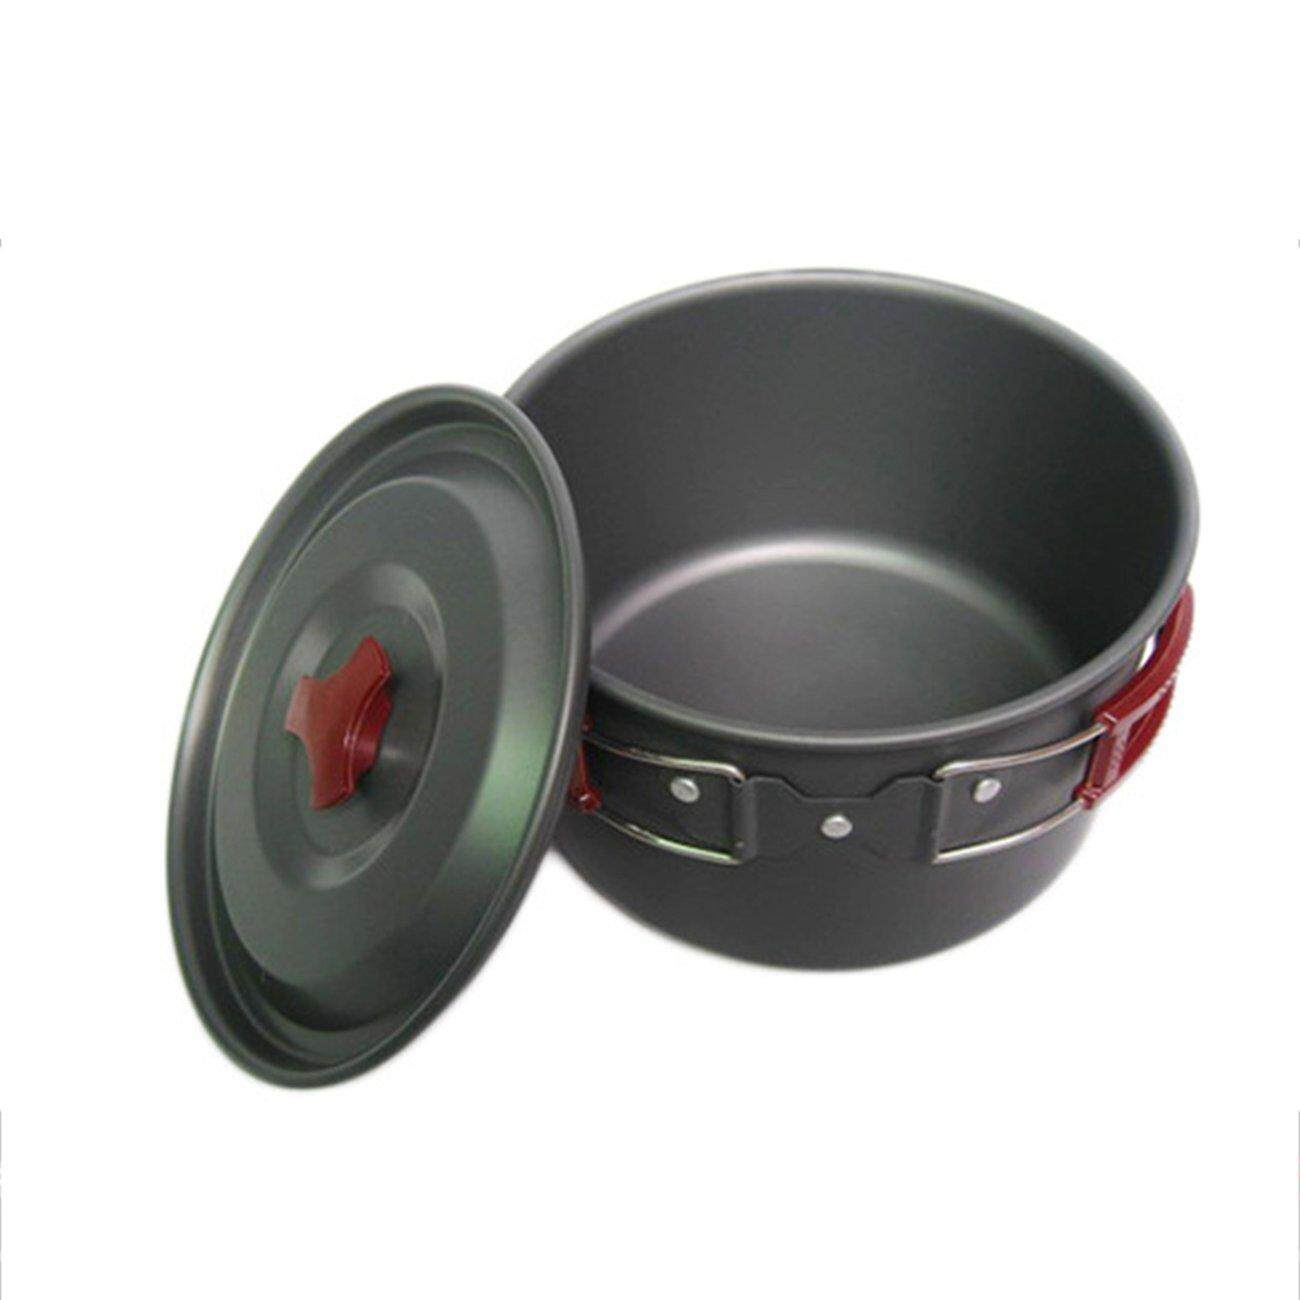 Most Popular AL500-1 Camping Cookware Traveling Picnic Strong Hiking Travel Outdoor Pot